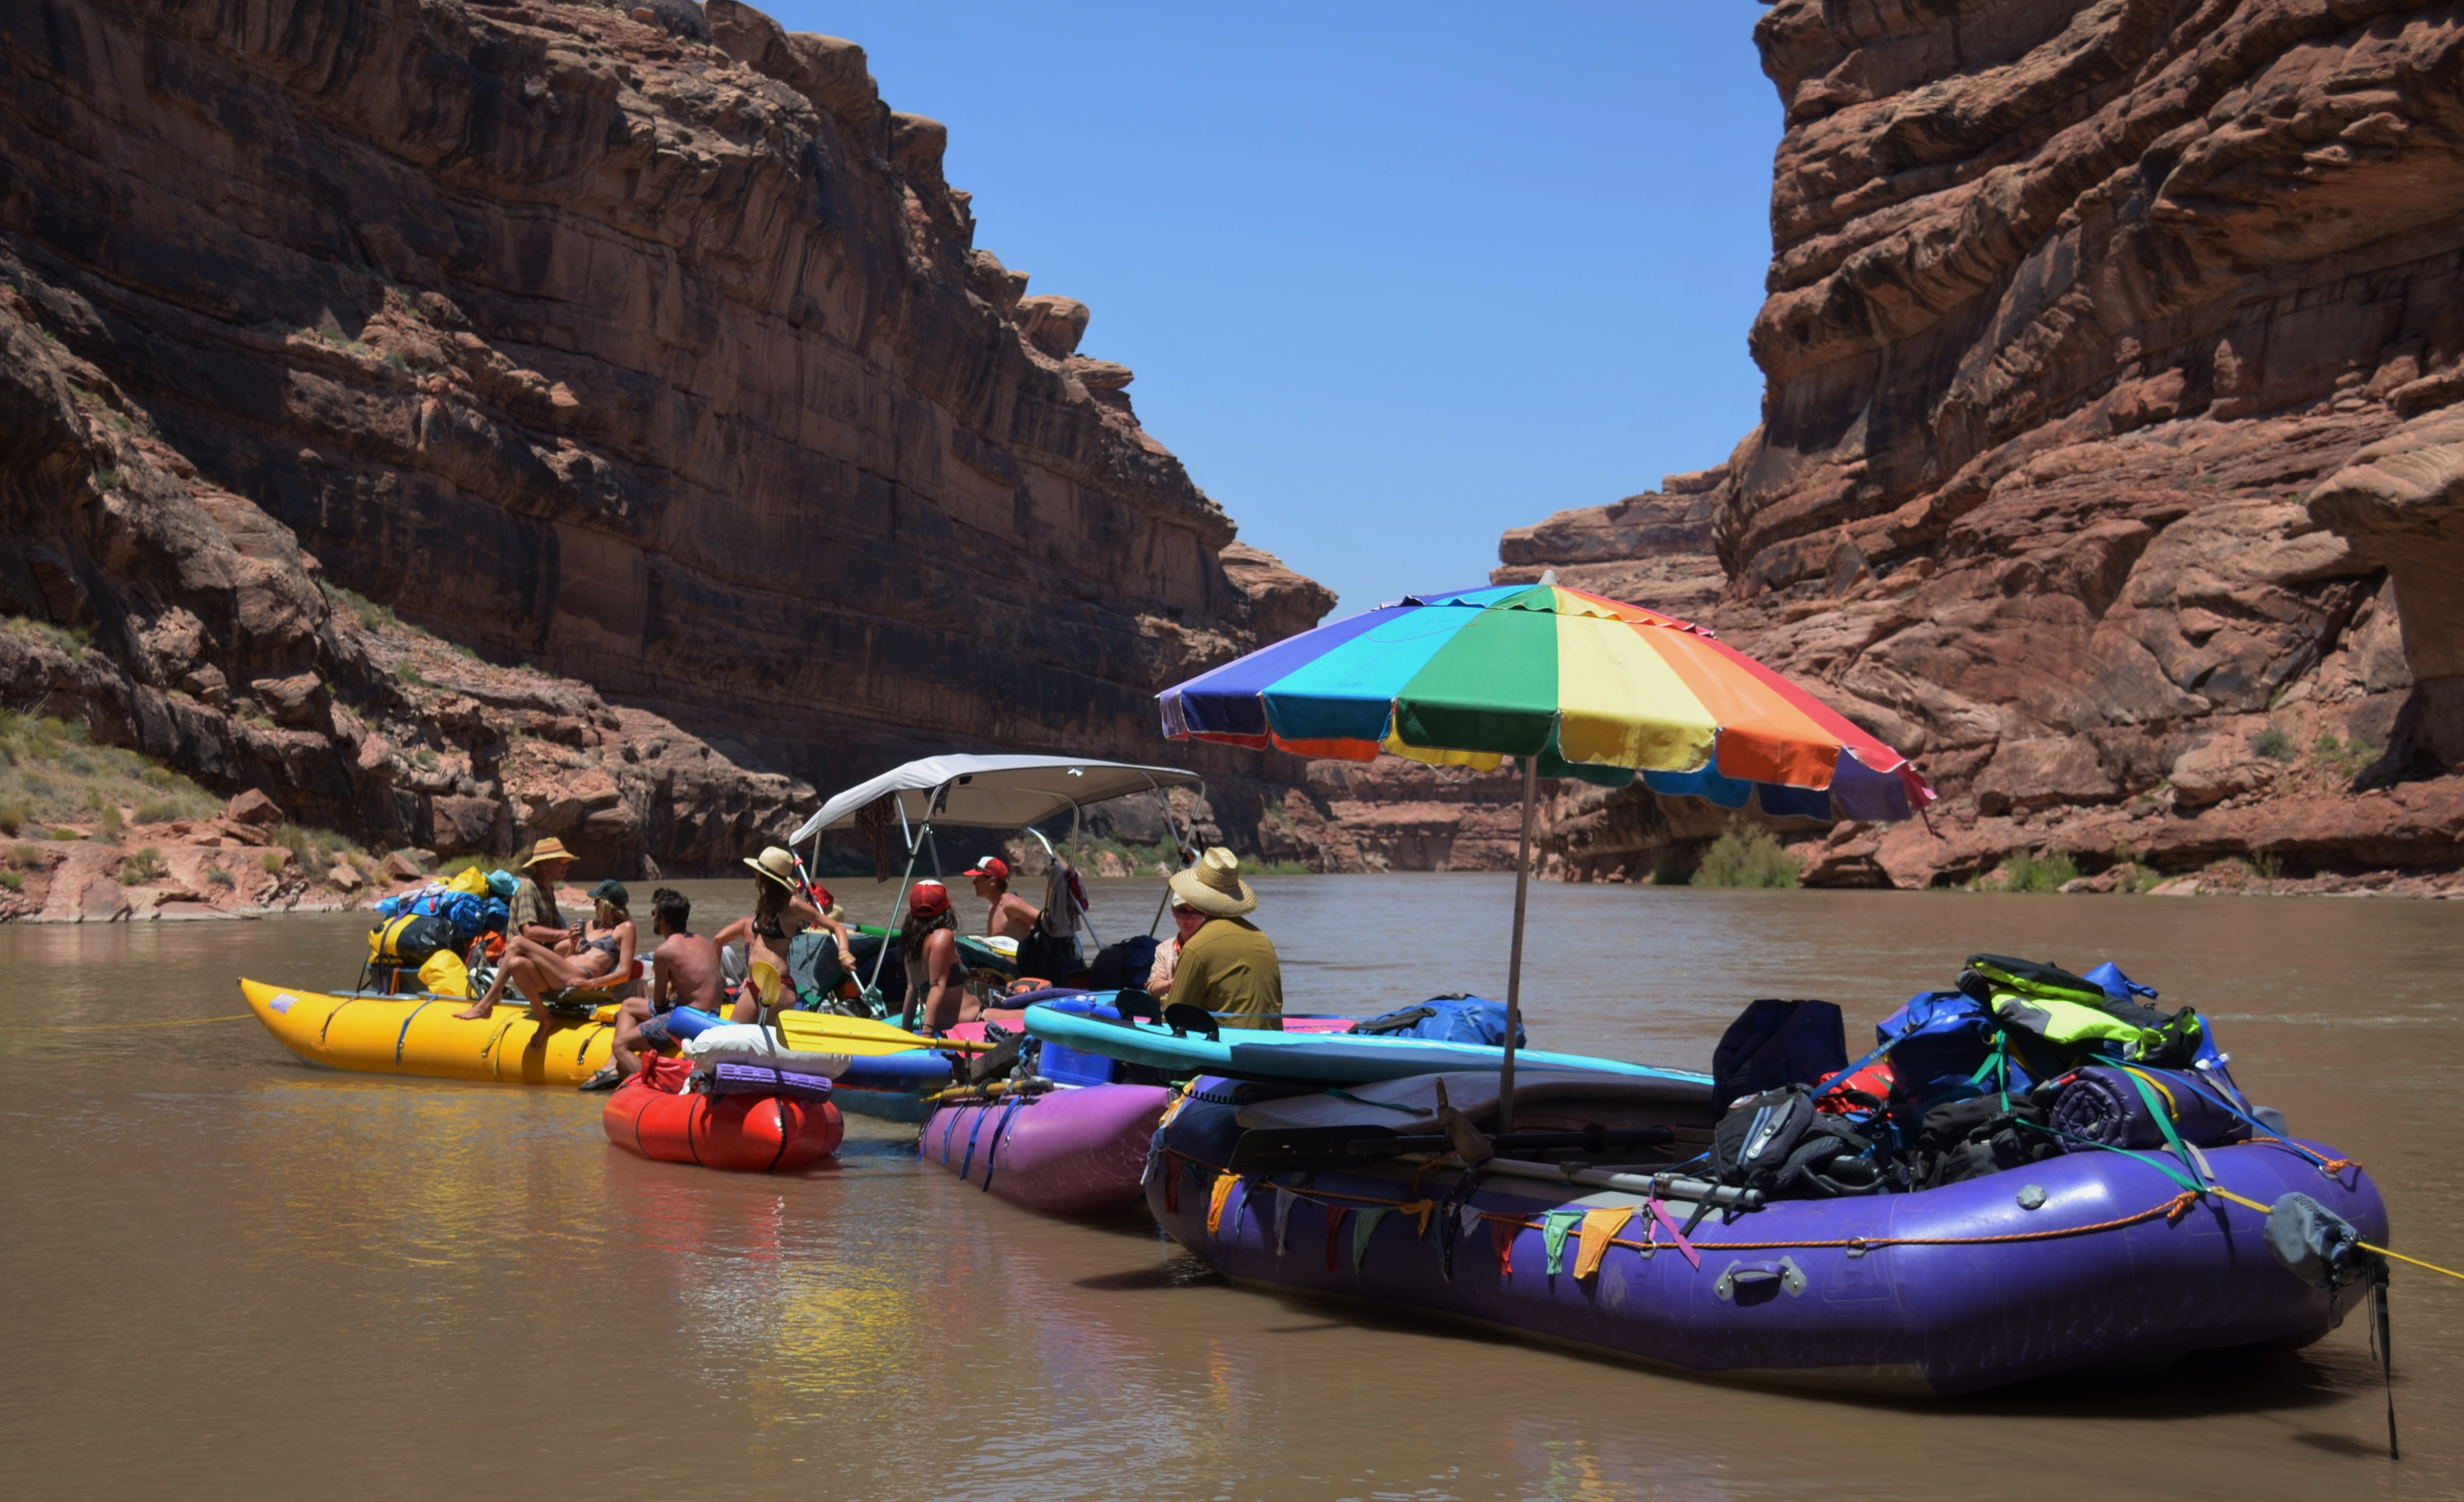 Raft party barge on the San Juan River